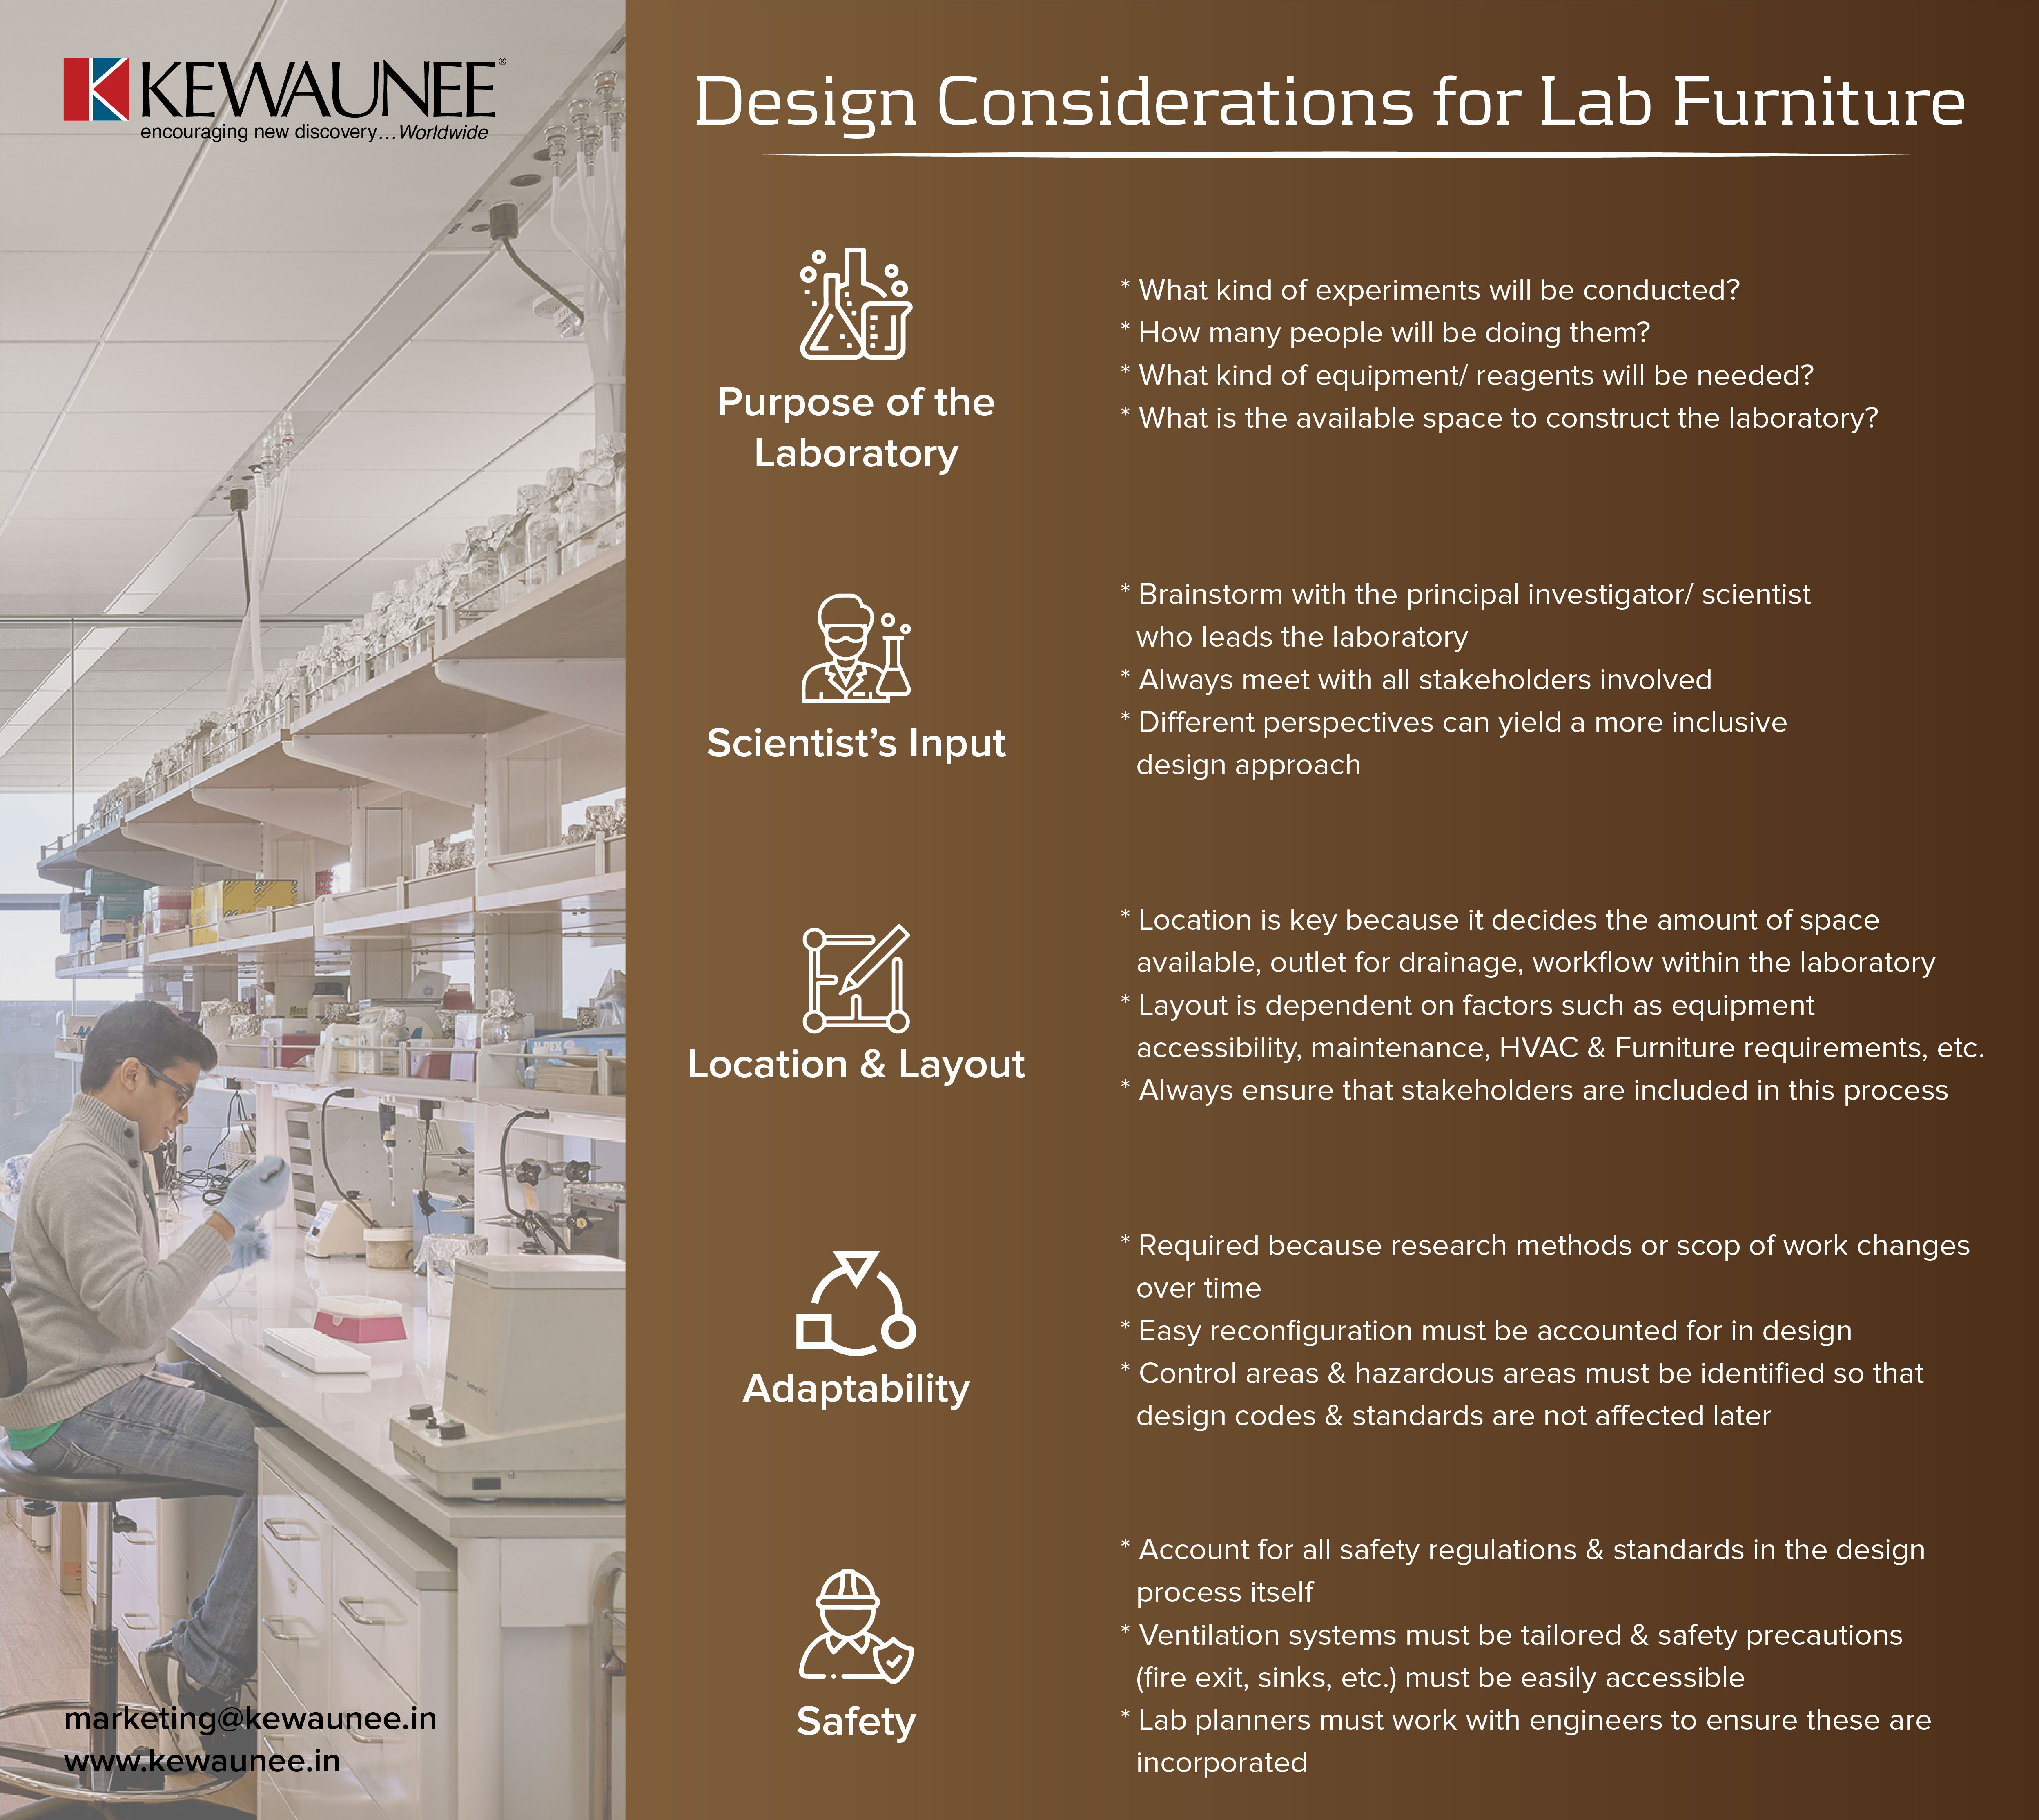 Design Considerations for Lab Furniture